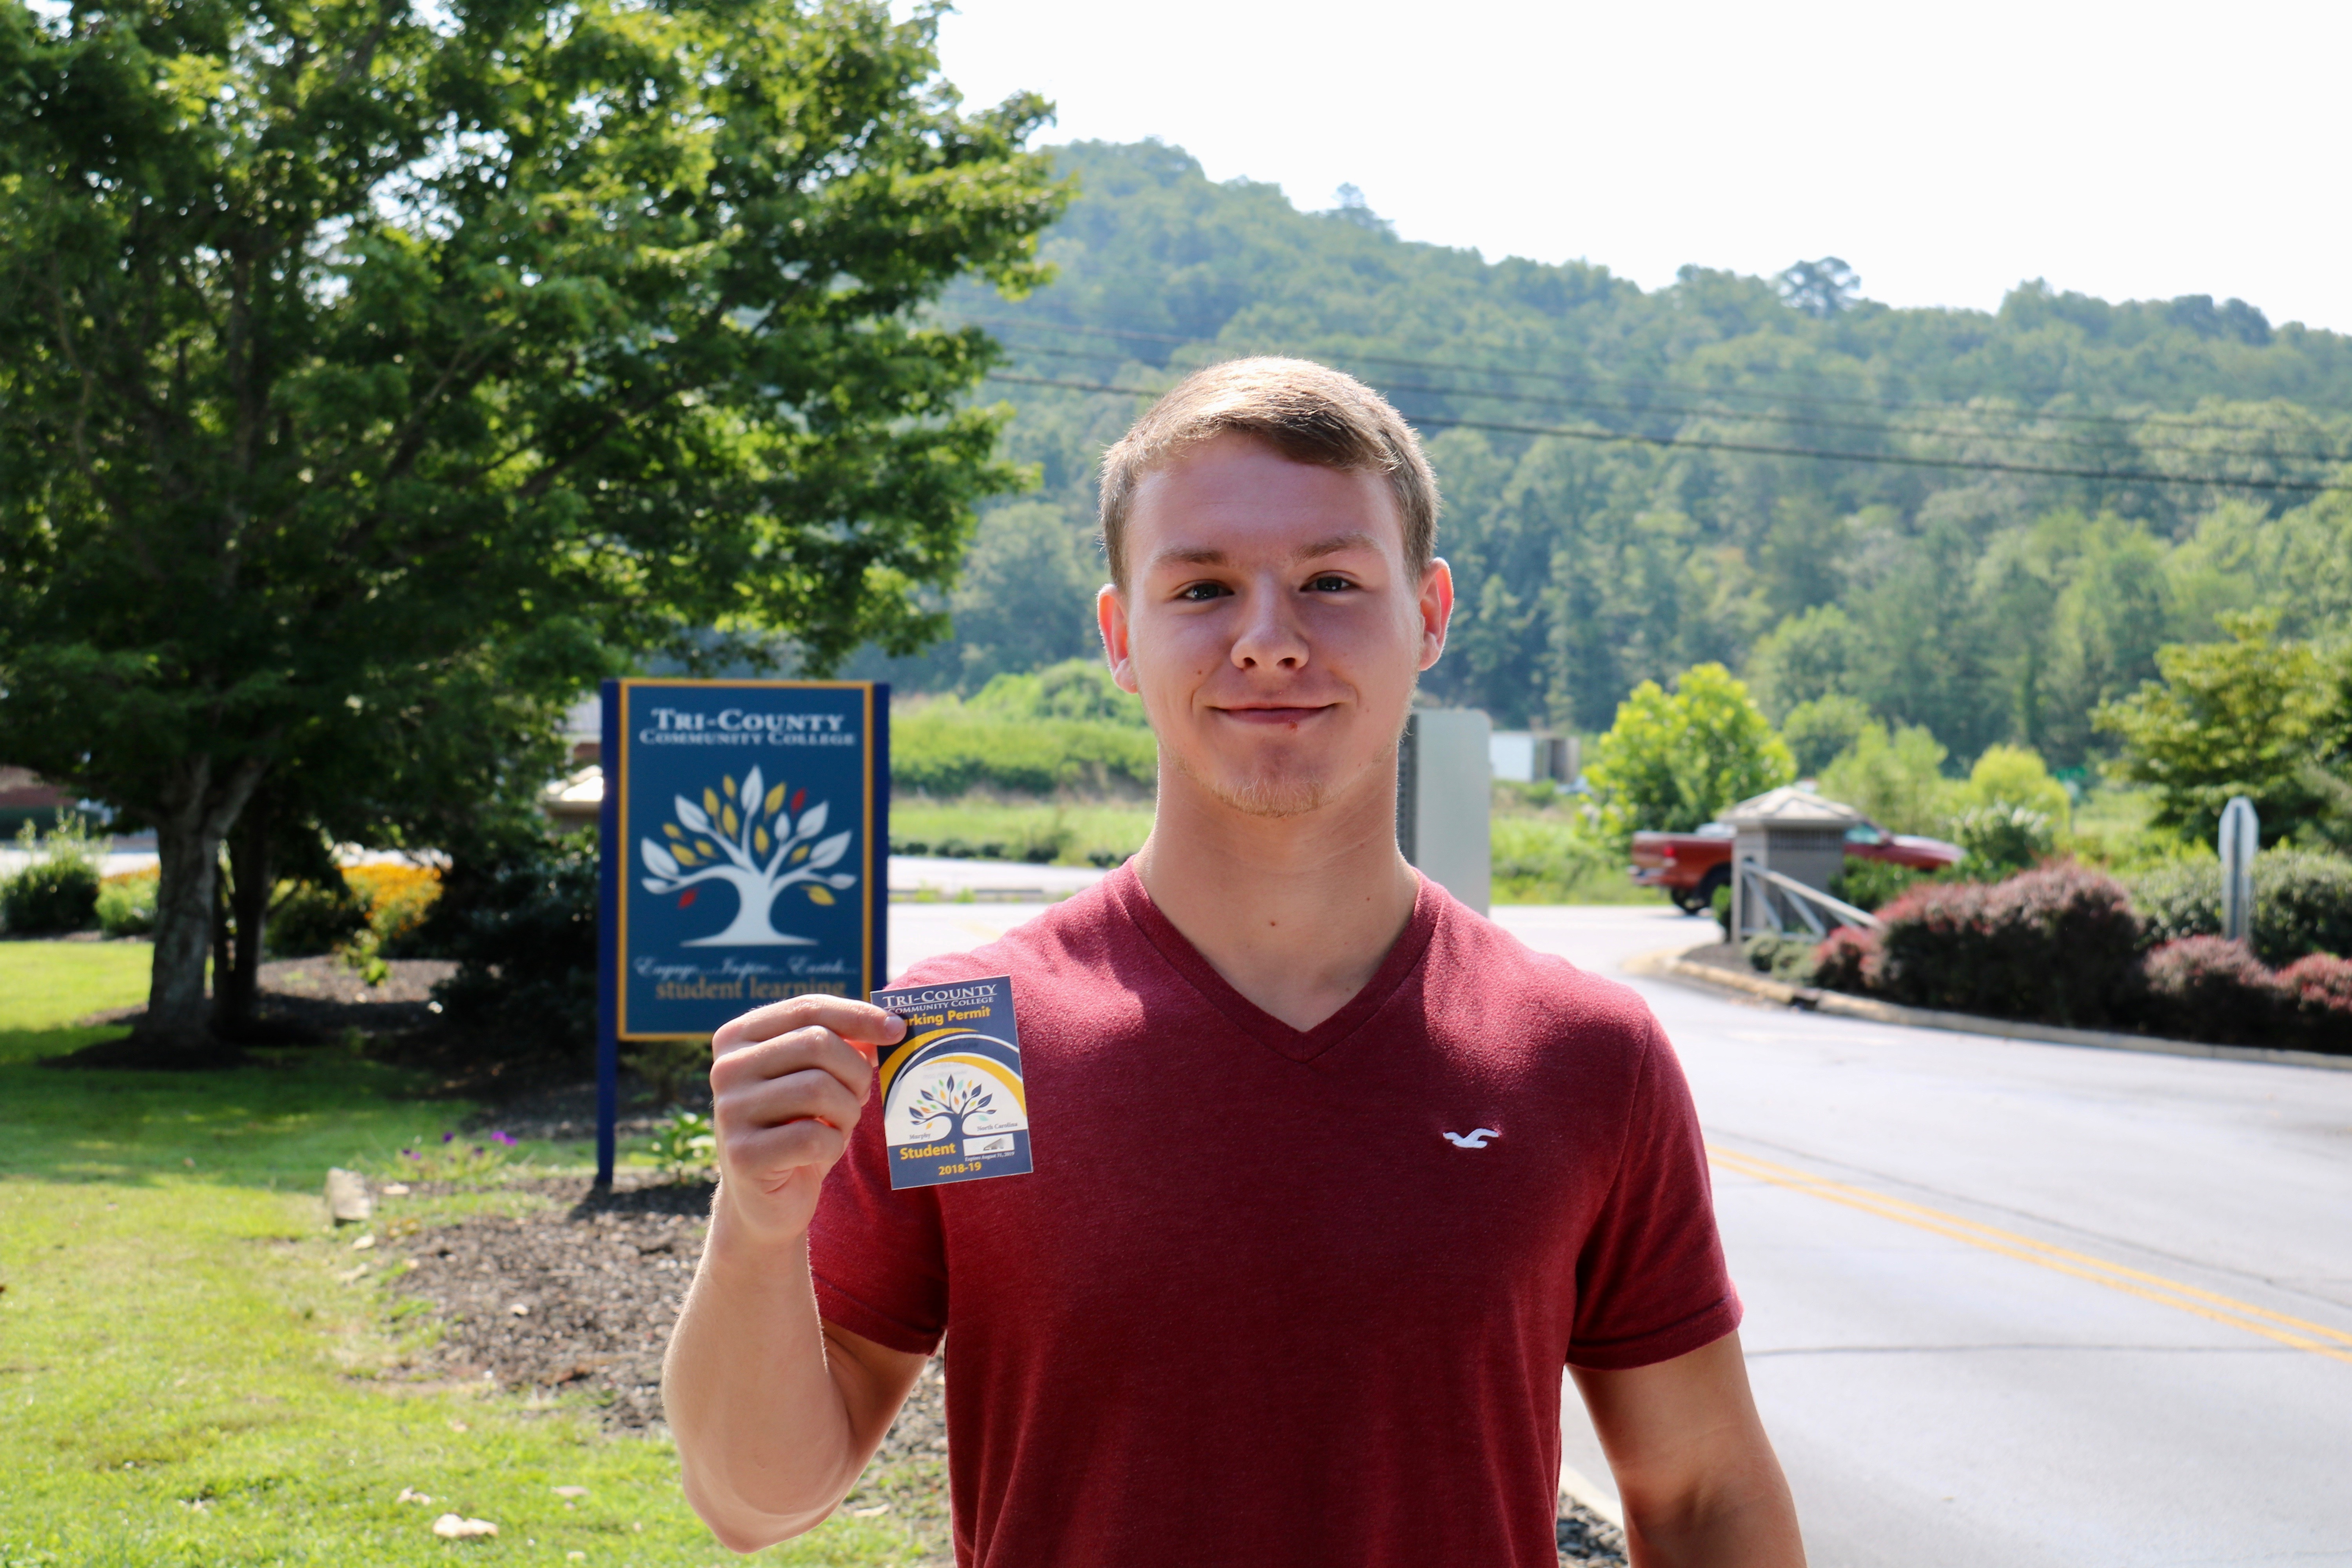 Evan Dillard, Tri-County Community College student, shows off his new college parking pass during fall registration last August at the main campus in Peachtree.